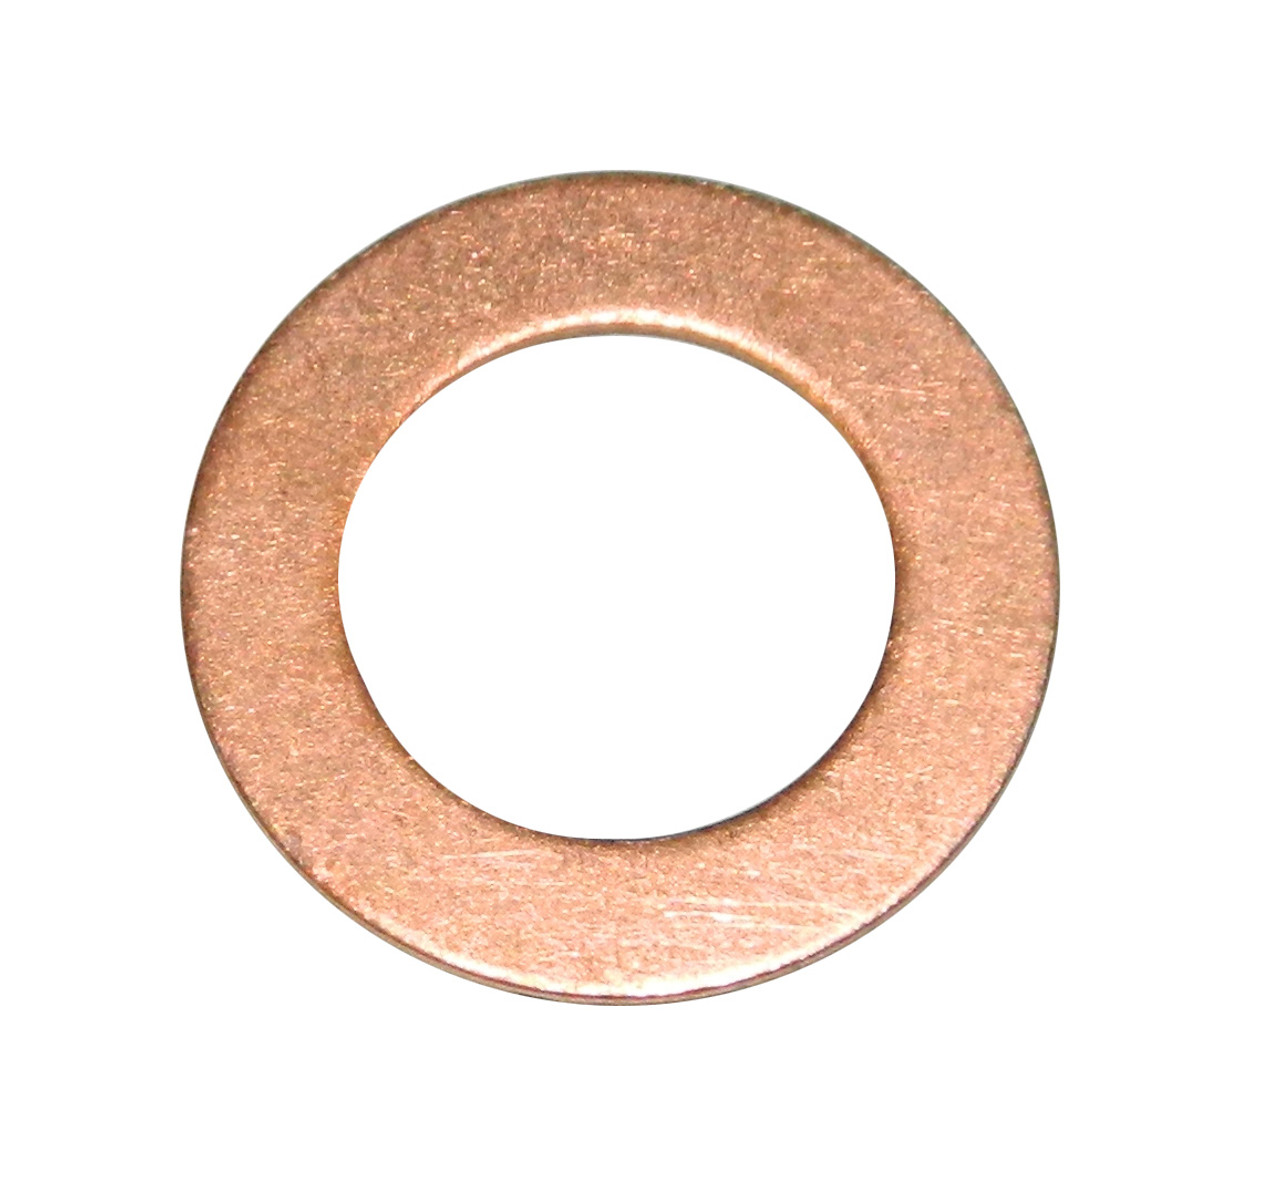 "1760 --- Hydro-Act Copper Washer for Master Cylinder - 1/2"" ID"